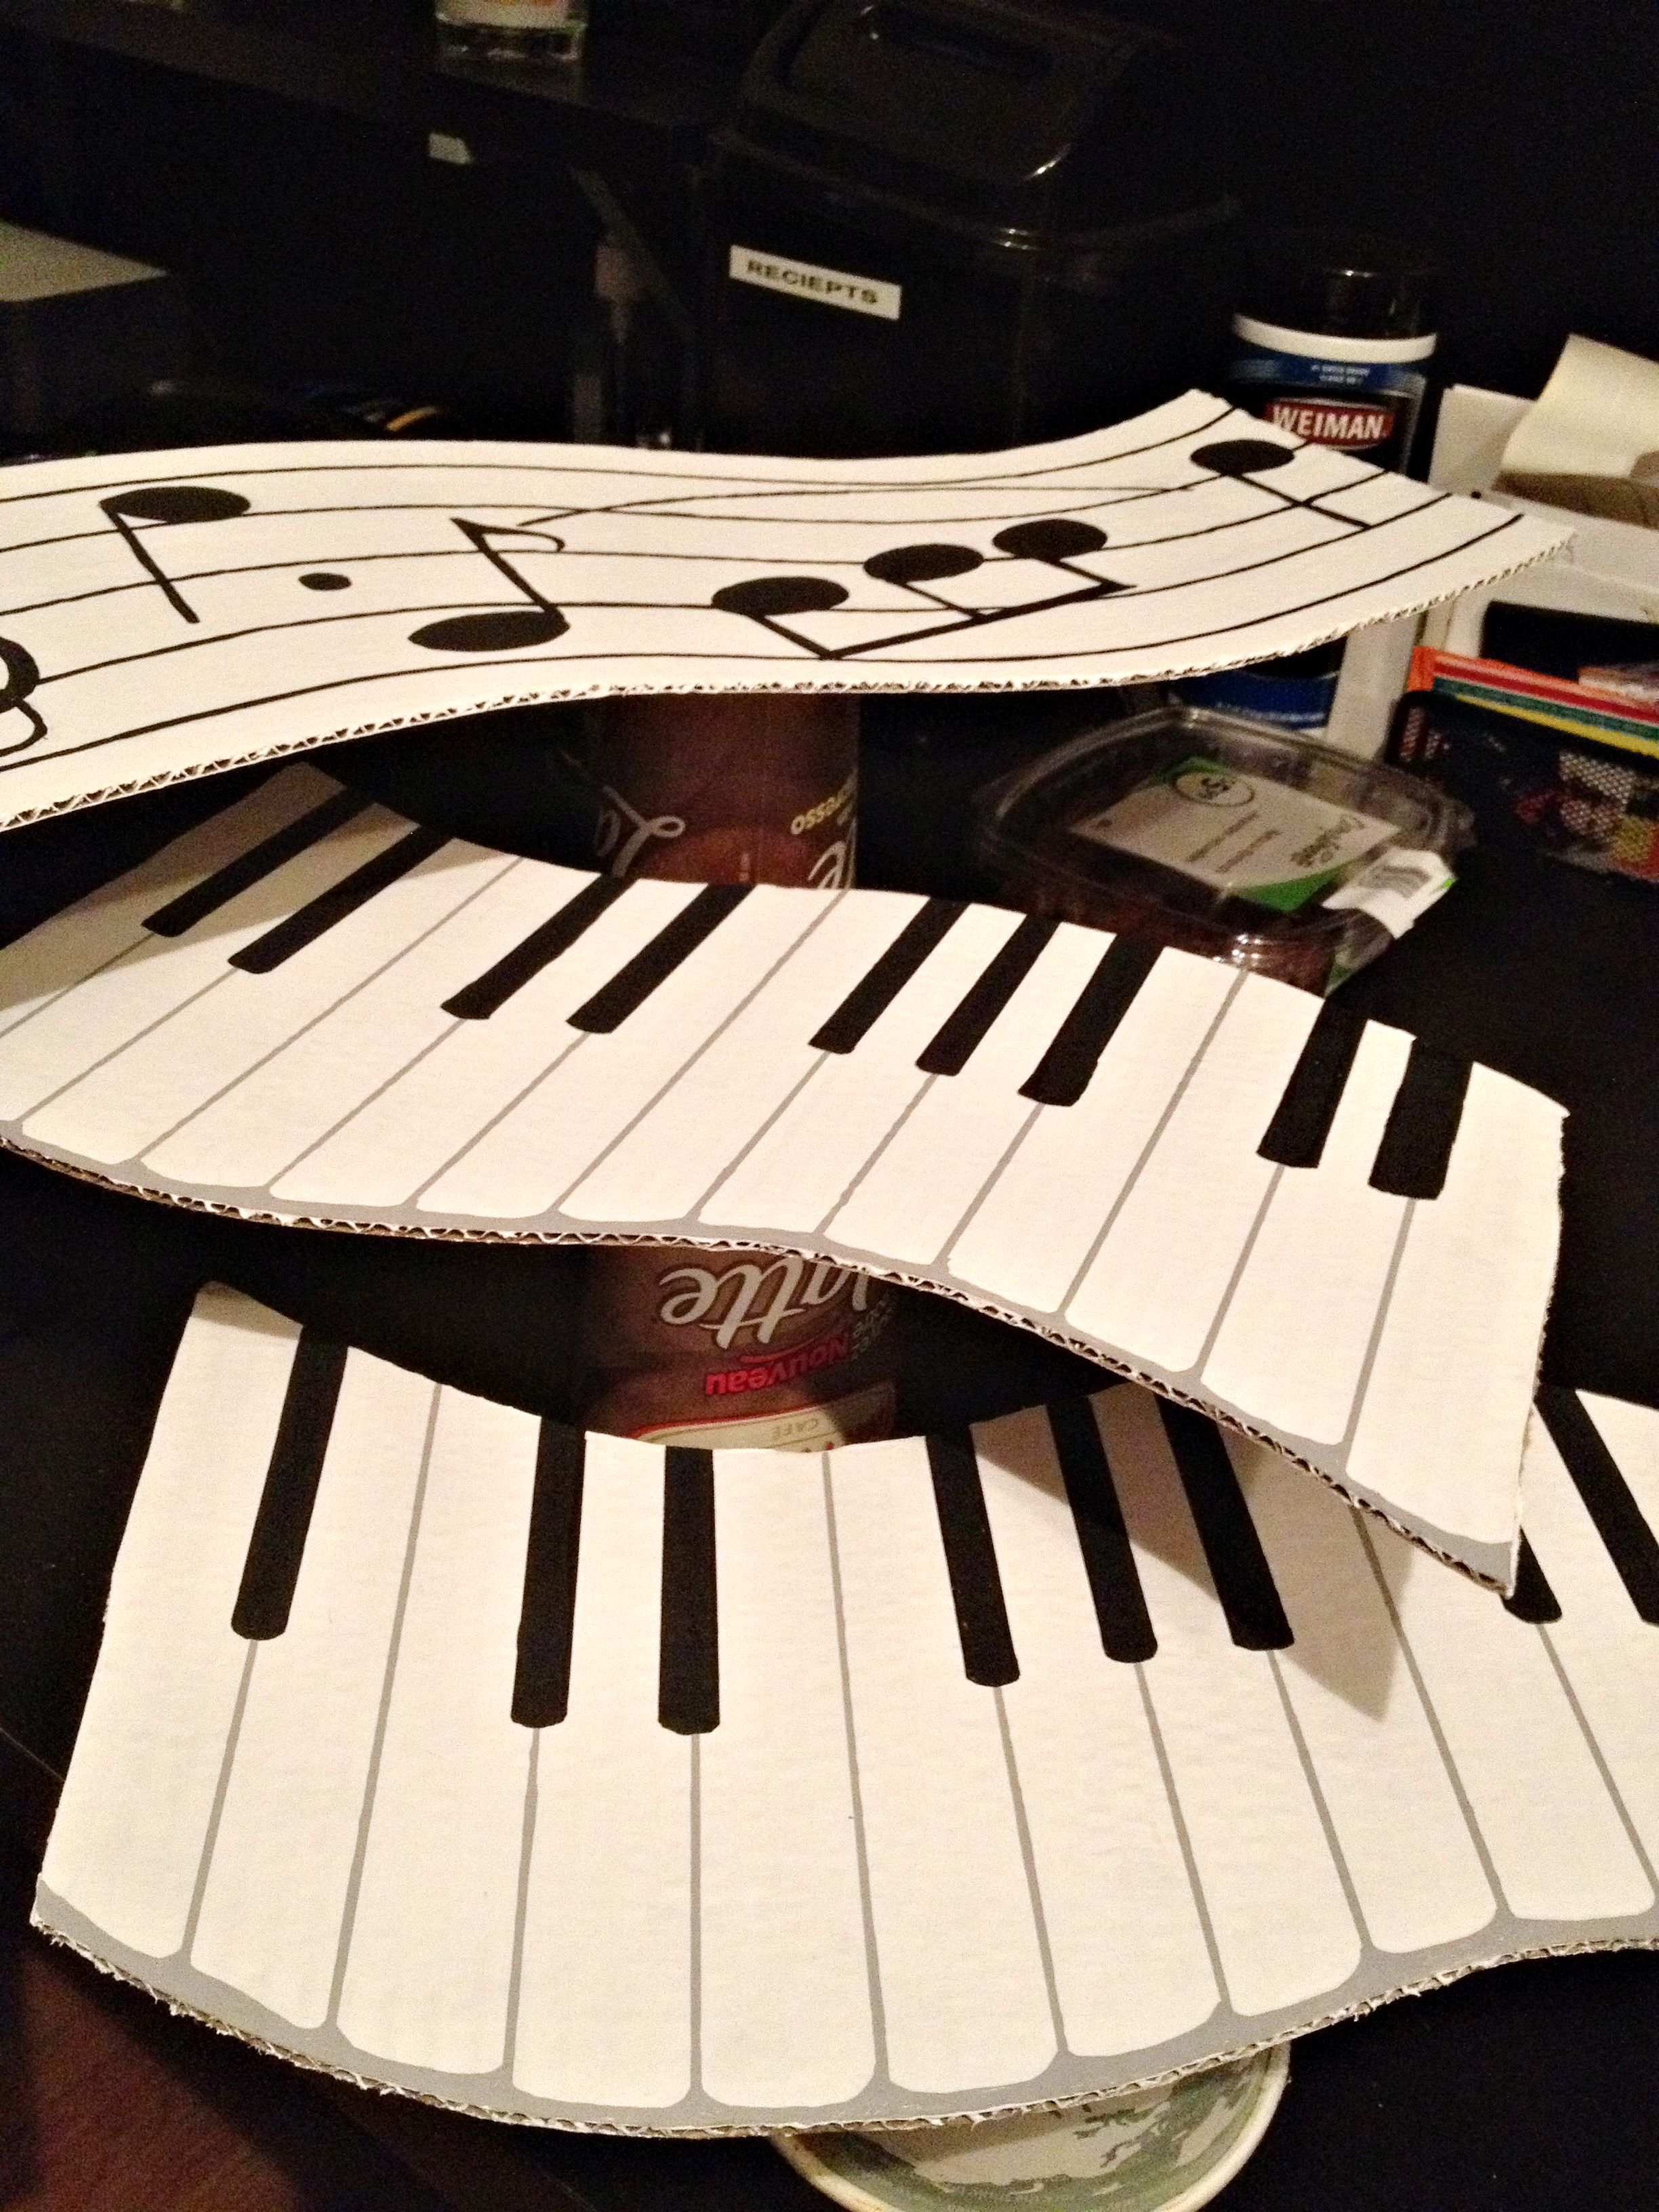 Charming Music Themed Party Decorations Ideas Part - 12: Music Themed Platters Made From Cardboard And Paint. Covered With Seran  Wrap For Temporary Music Themed Party.